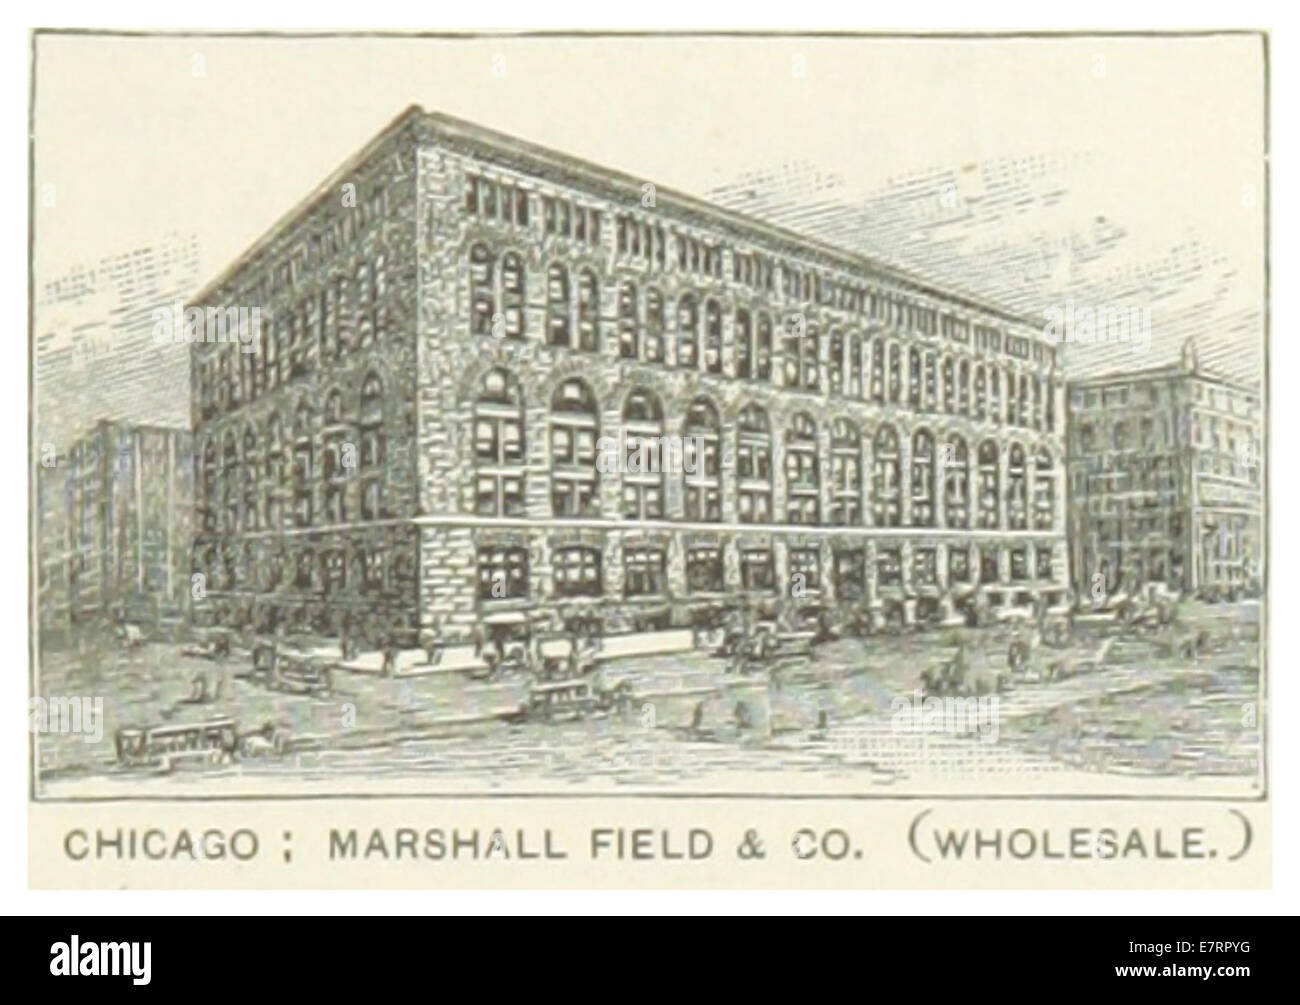 US-IL(1891) p229 CHICAGO, MARSHALL FIELD & COMPANY - Stock Image